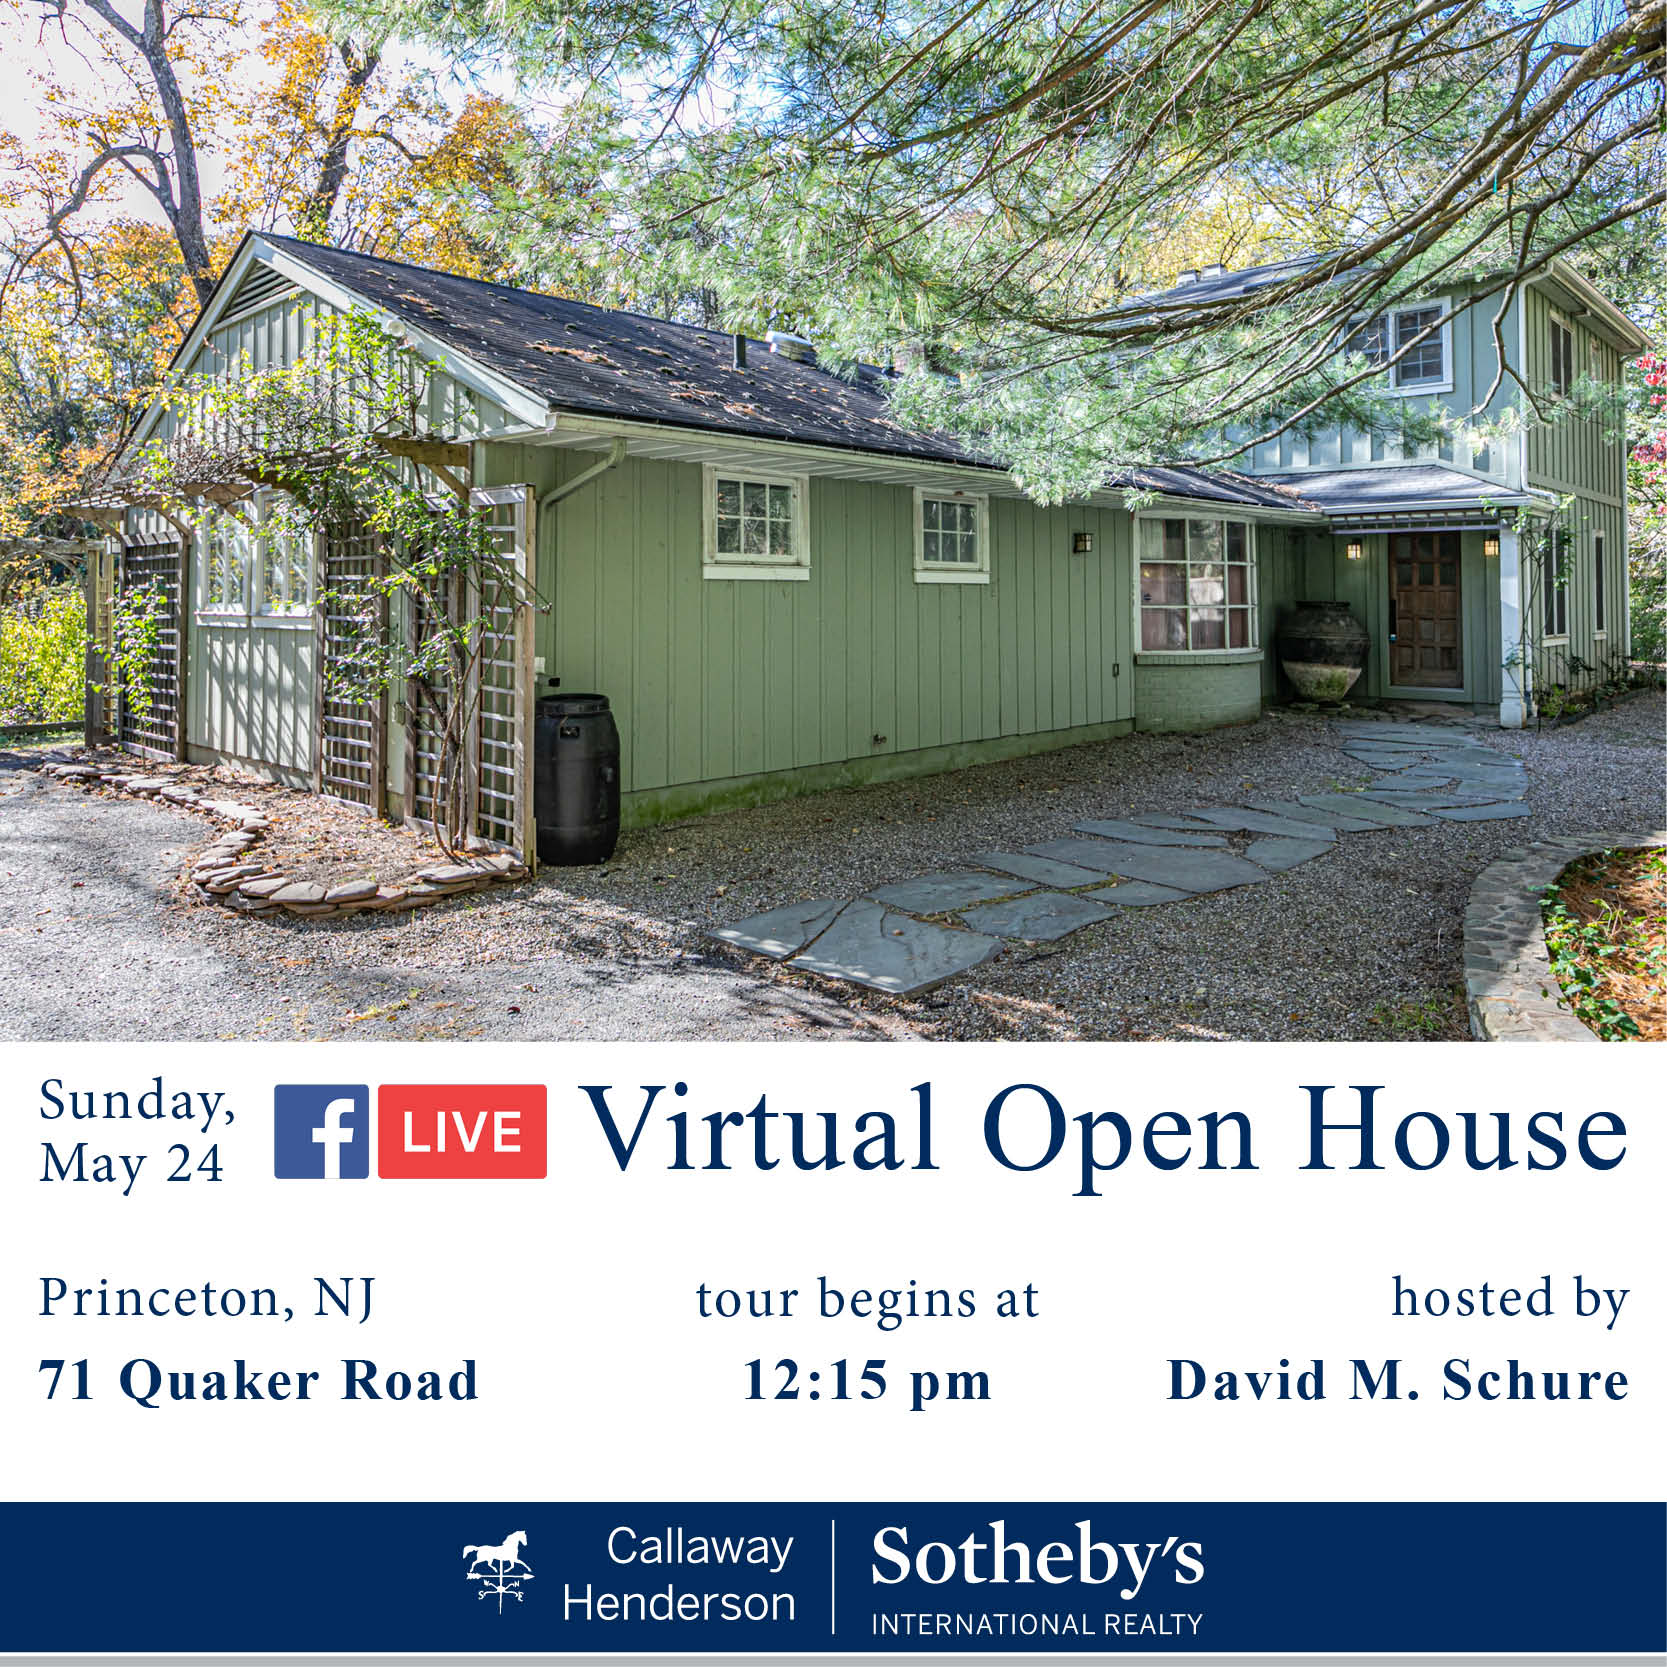 20200524 Live Virtual Open House Template-Quaker Road 71